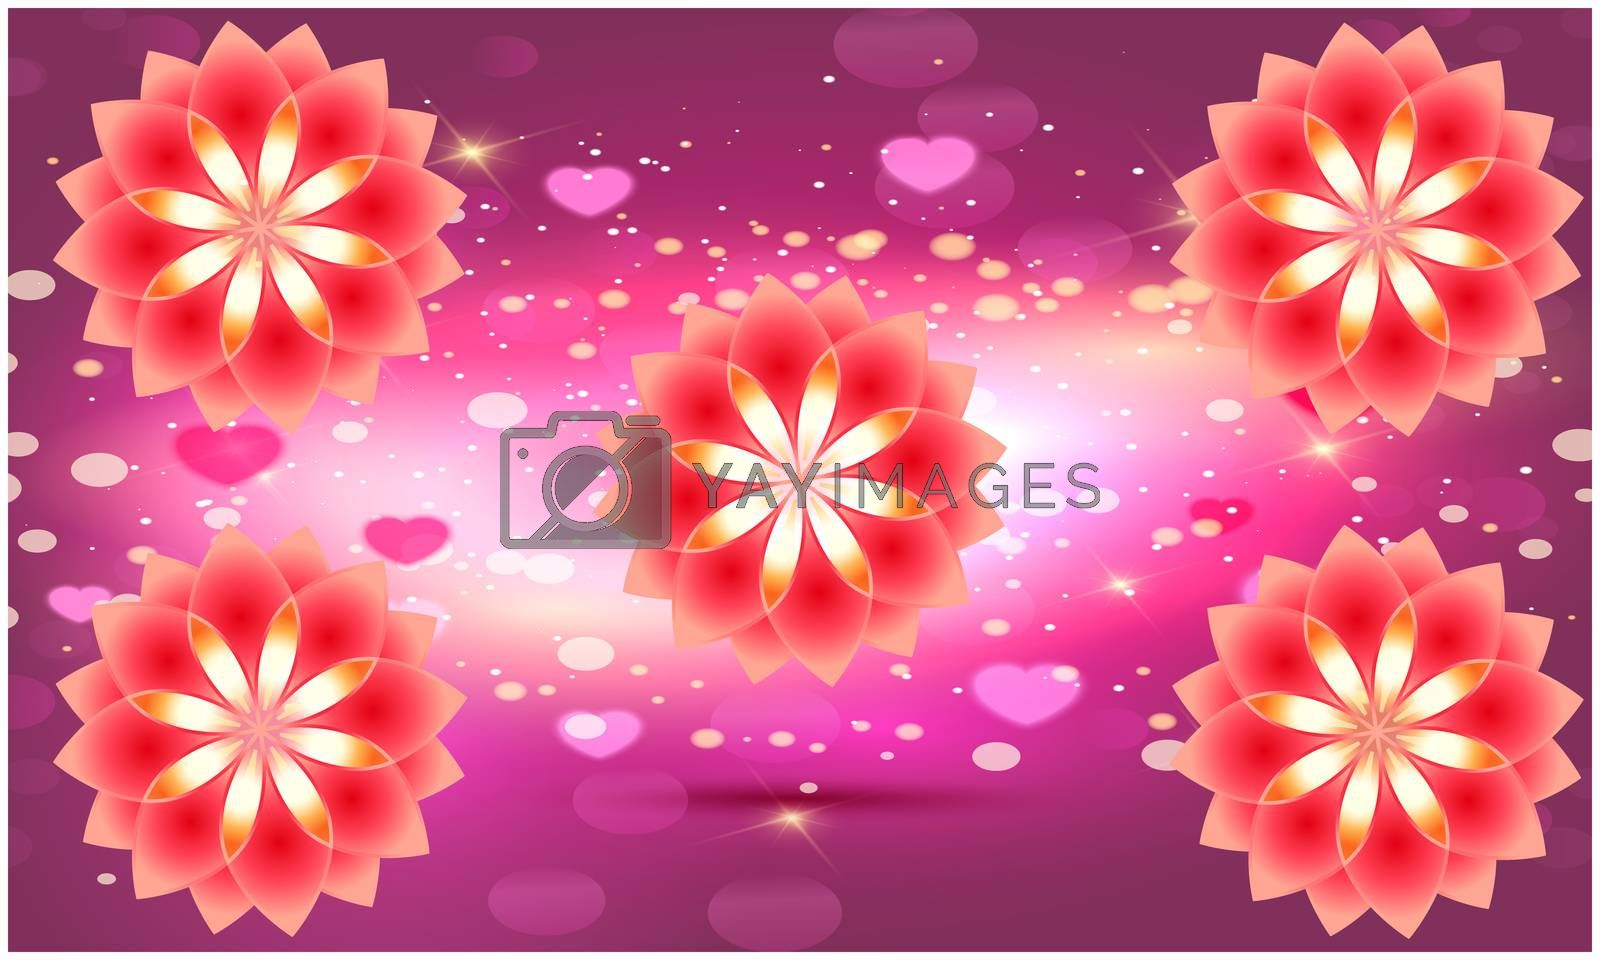 digital textile design of flowers on abstract background